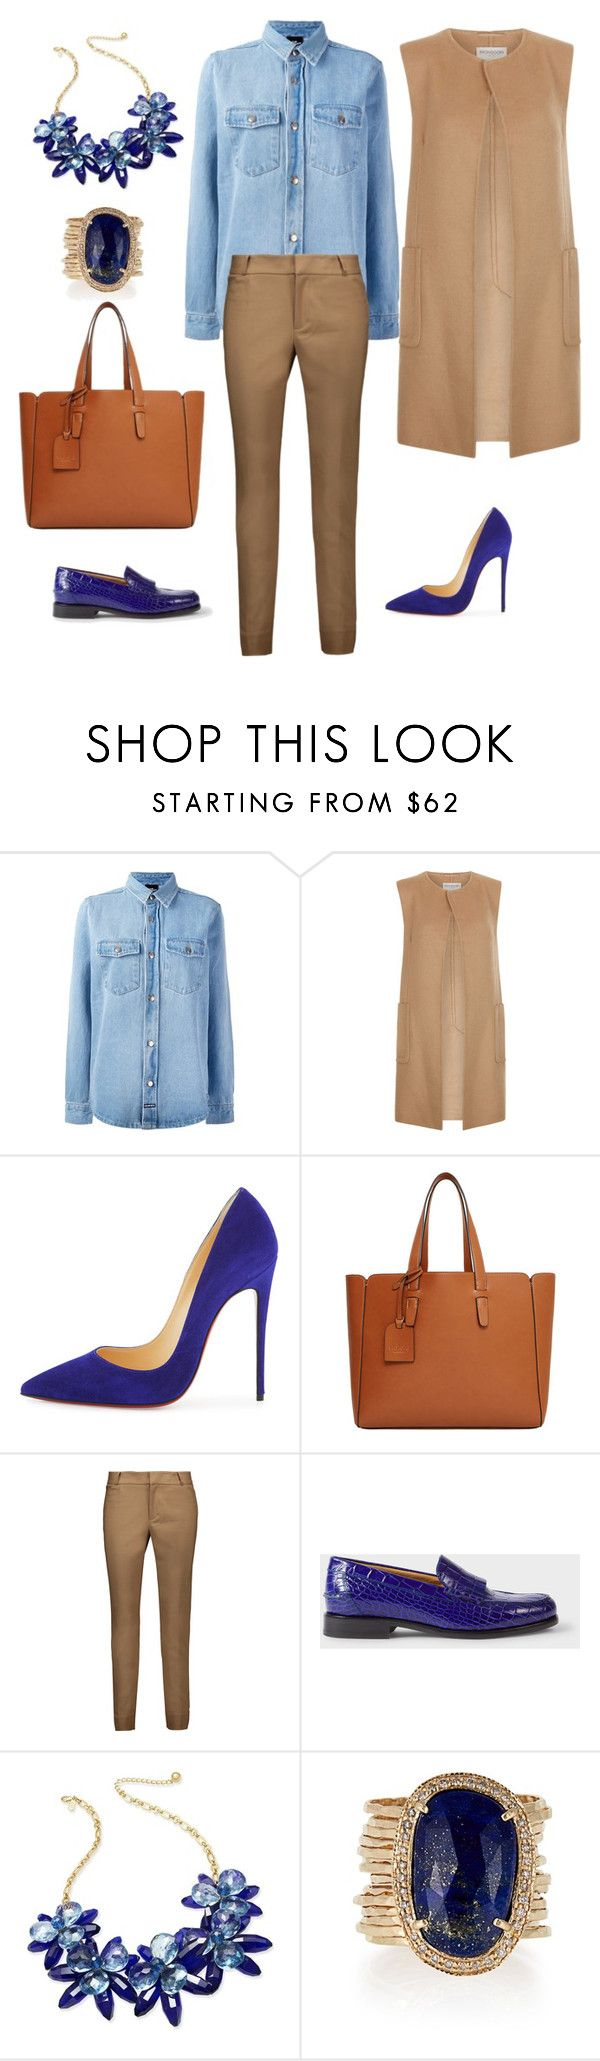 """Без названия #39"" by elenaspring on Polyvore featuring мода, LES (ART)ISTS, Monsoon, Christian Louboutin, Violeta by Mango, Raoul, PS Paul Smith, Kate Spade и Jacquie Aiche"